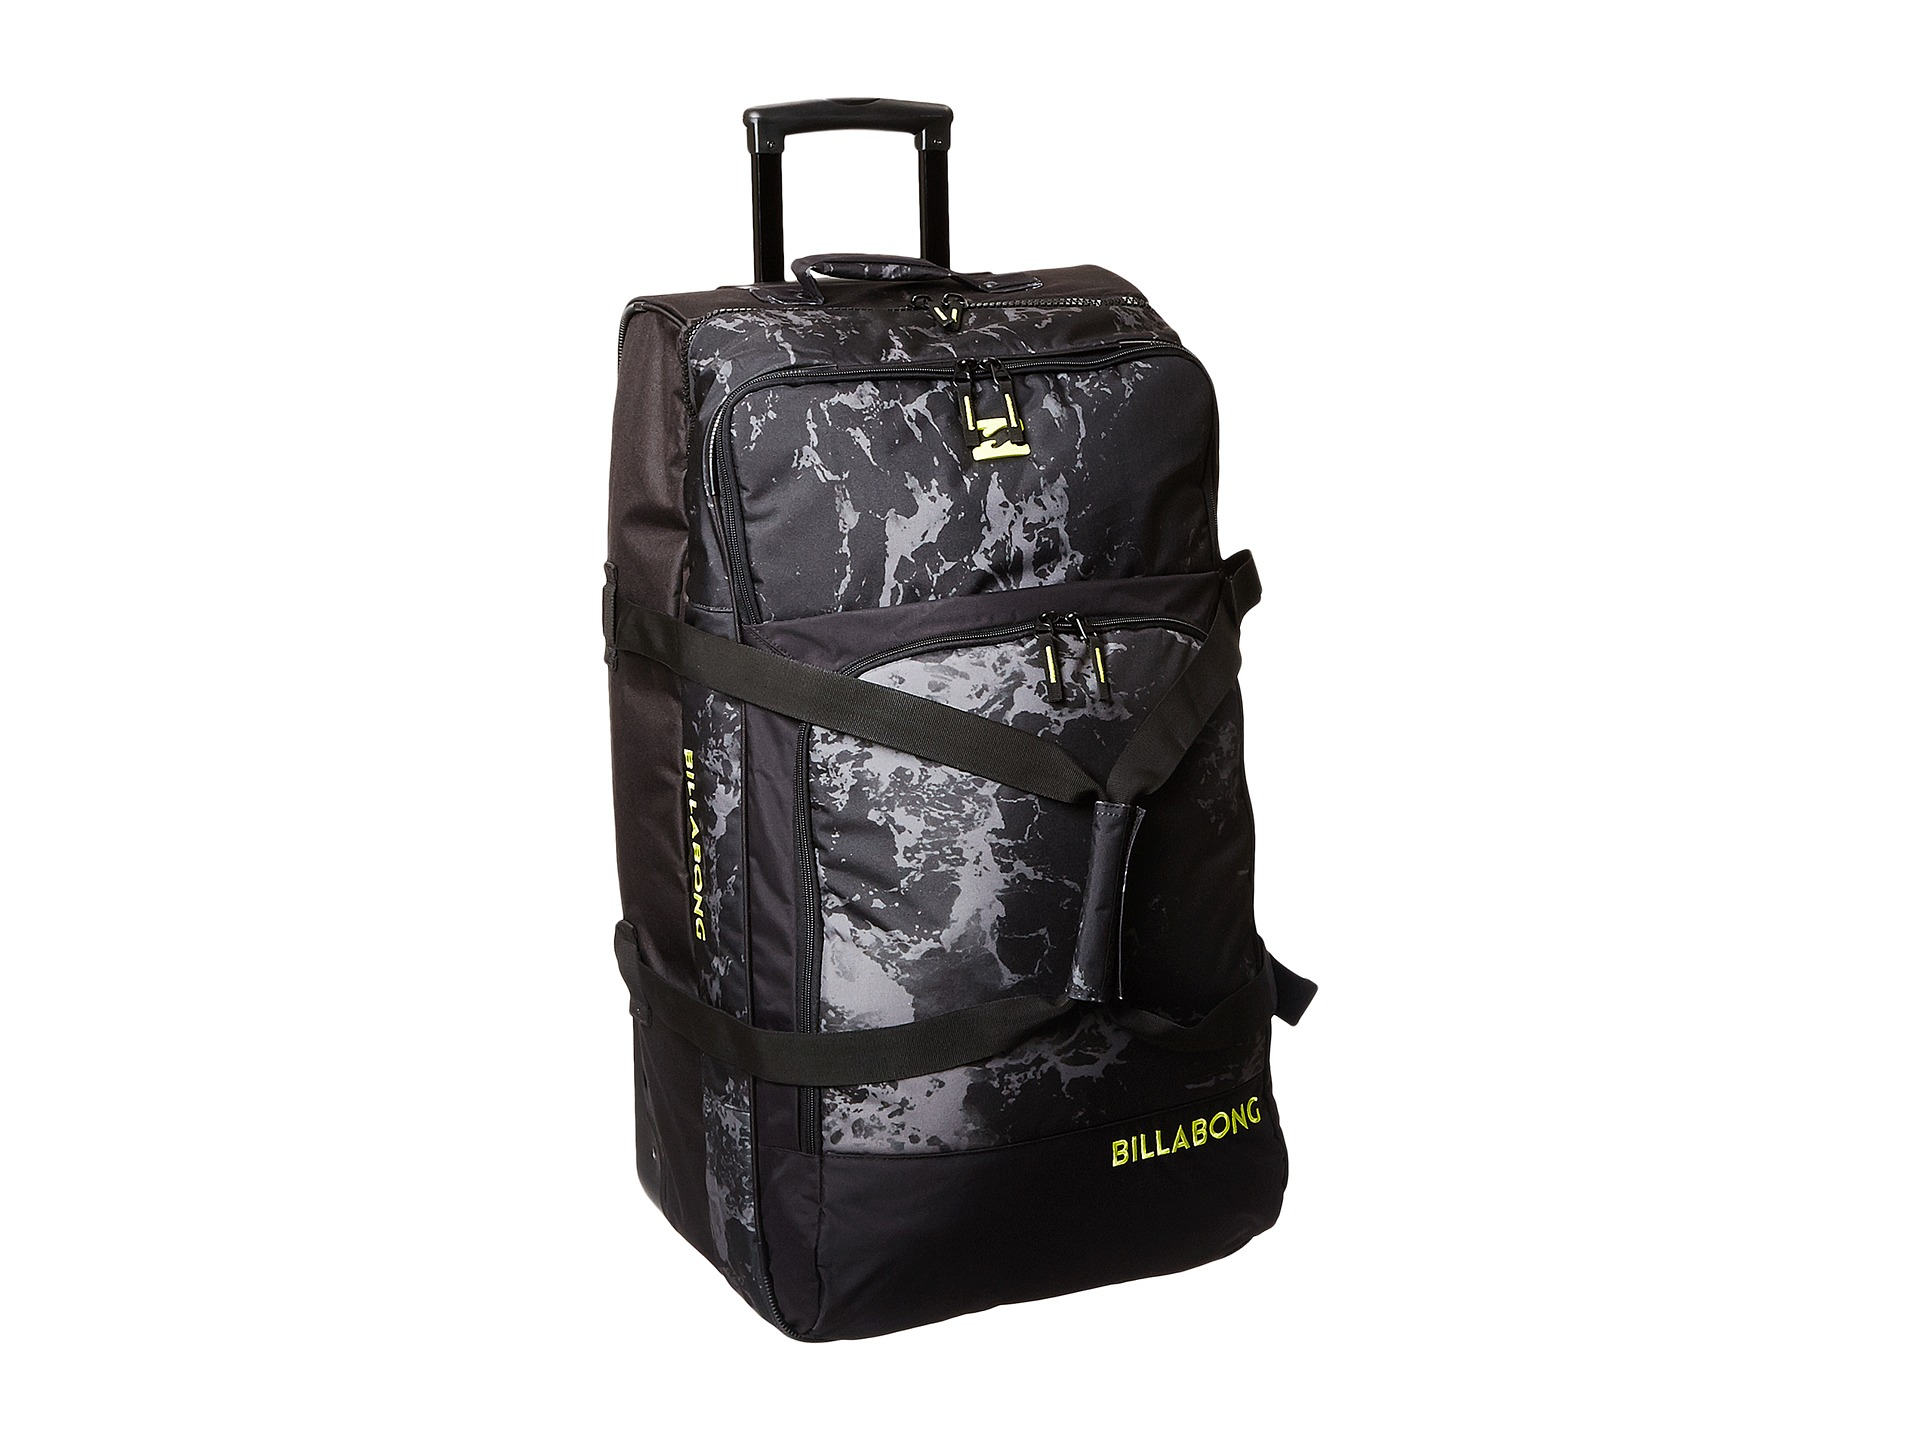 Lyst - Billabong Wheeled Luggage in Black for Men